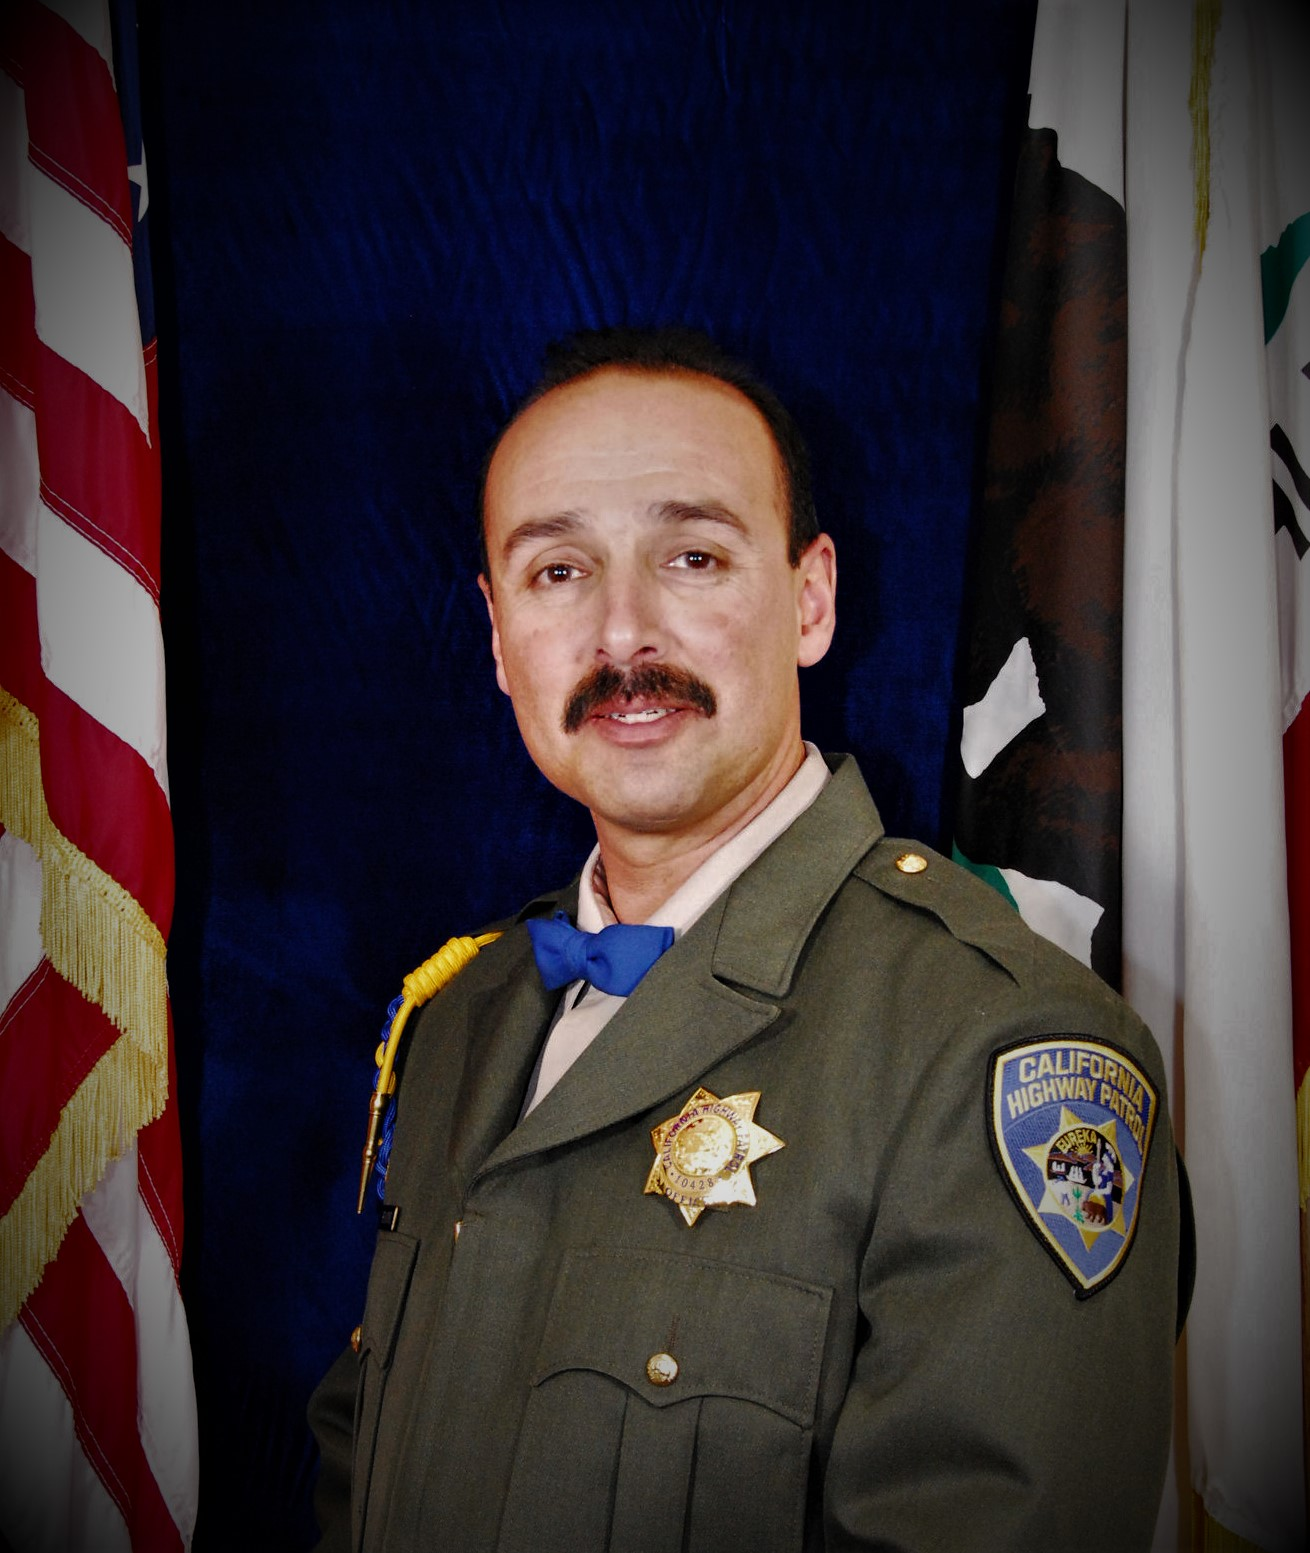 Officer Philip Dennis Ortiz | California Highway Patrol, California